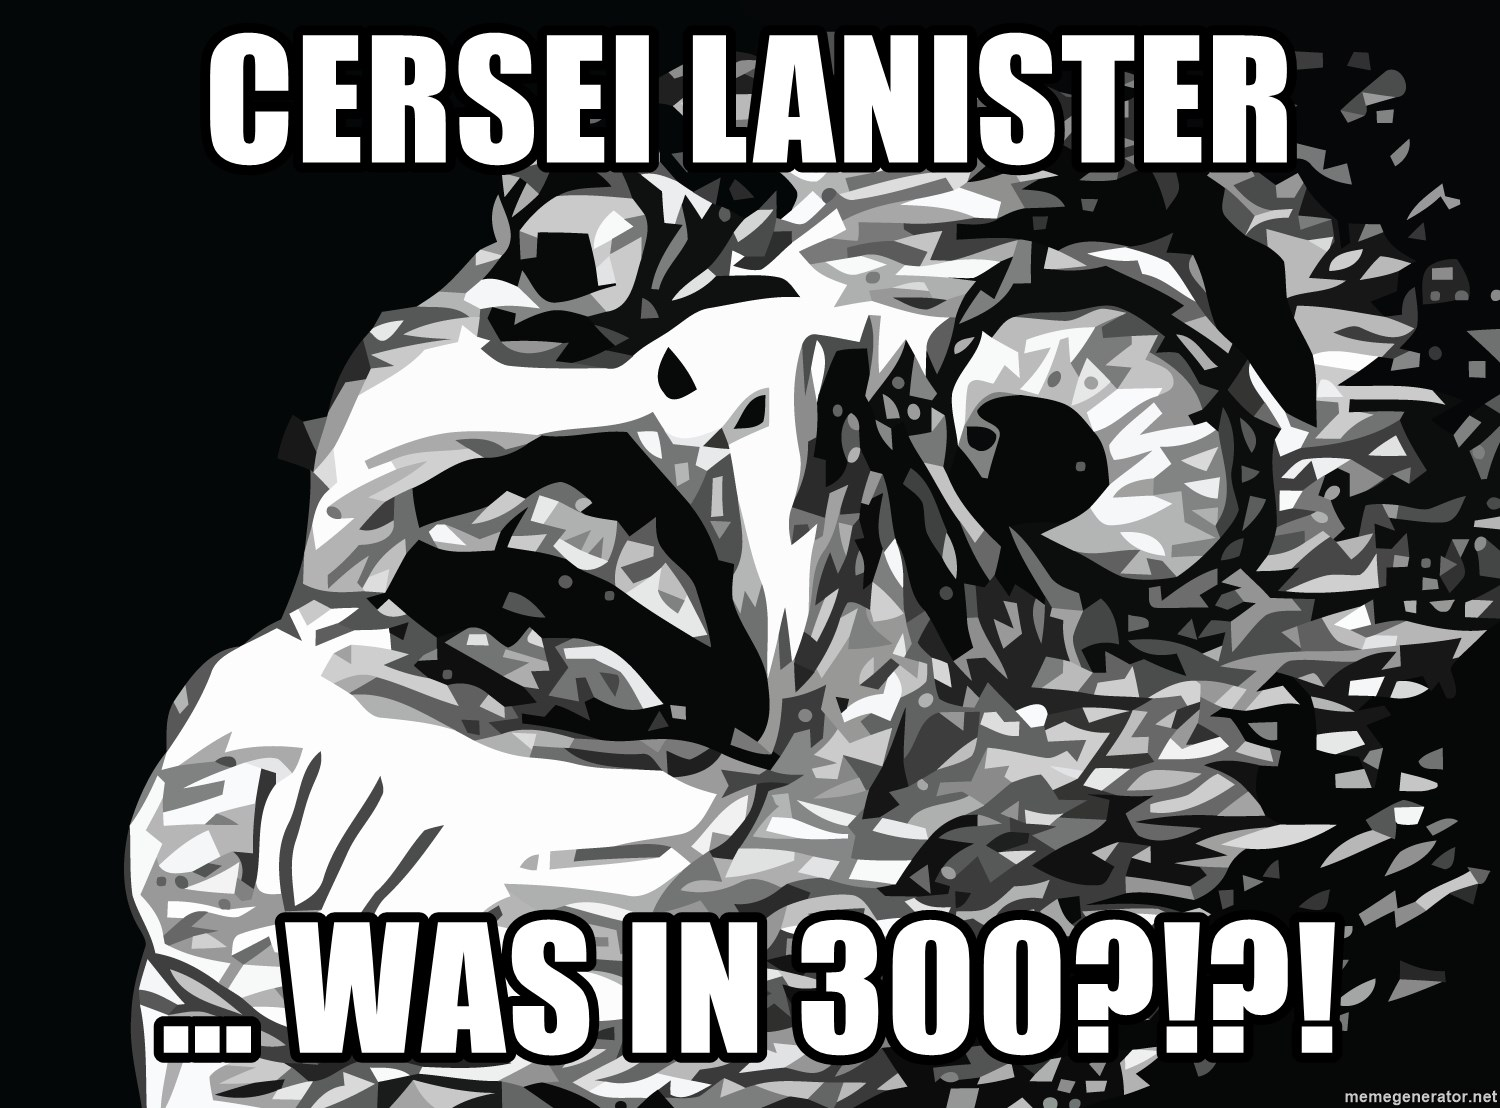 shocked - Cersei laNister ... Was in 300?!?!